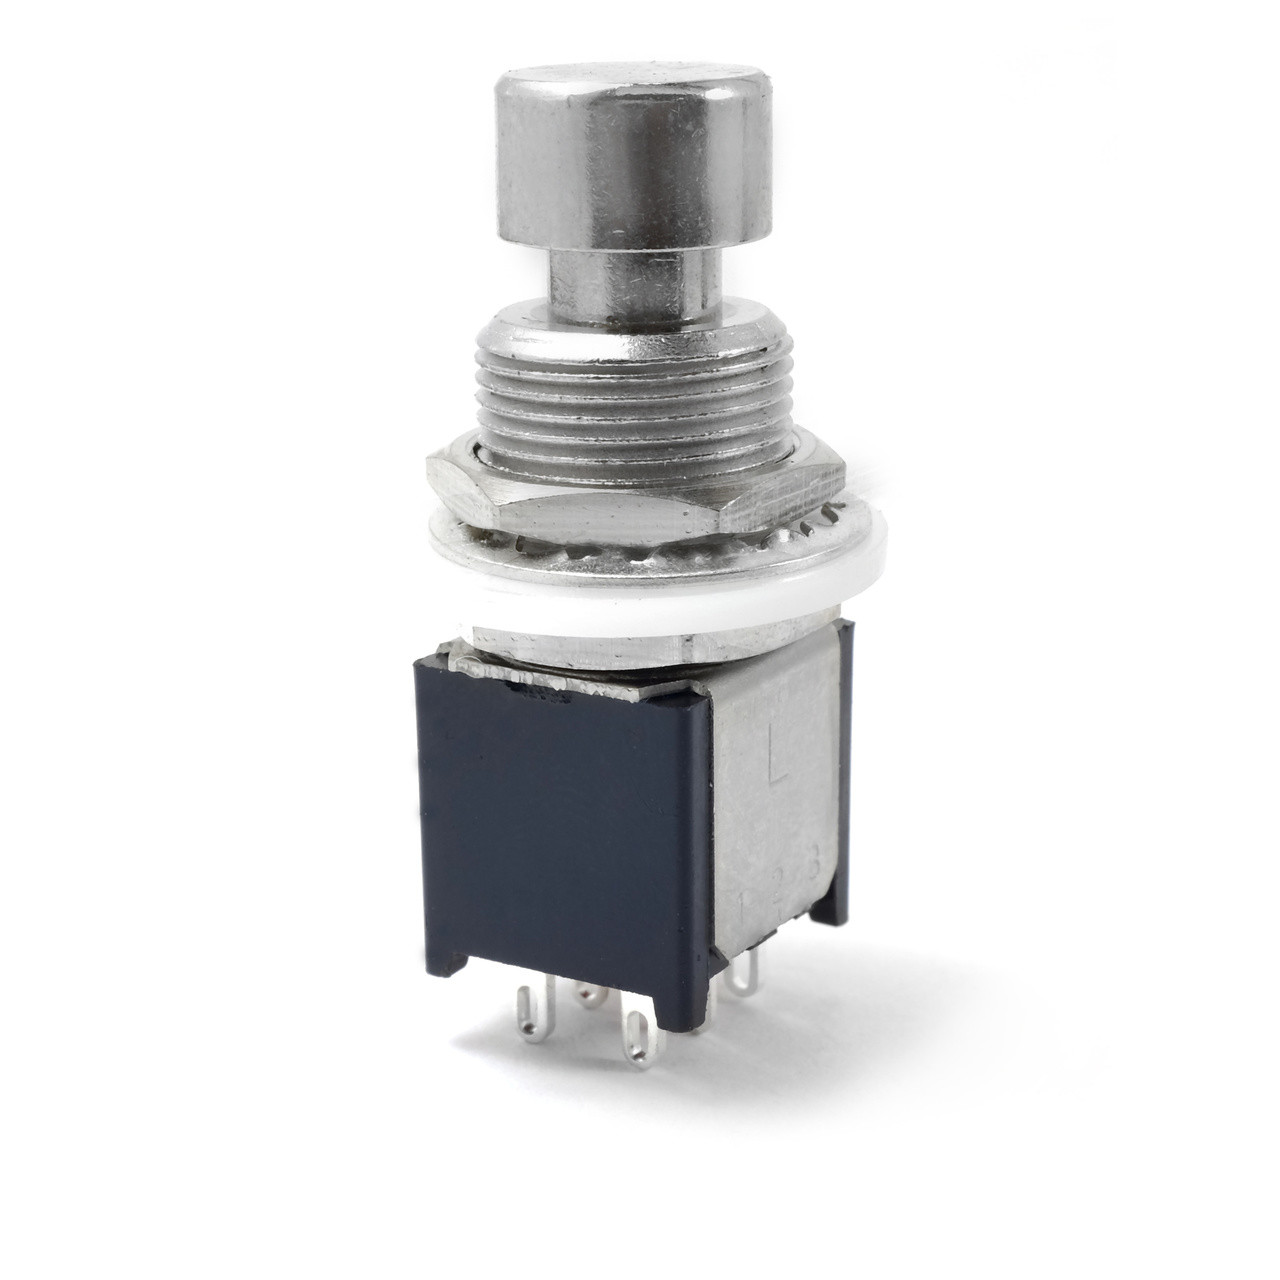 dpdt latched foot switch - low profile - solder lugs